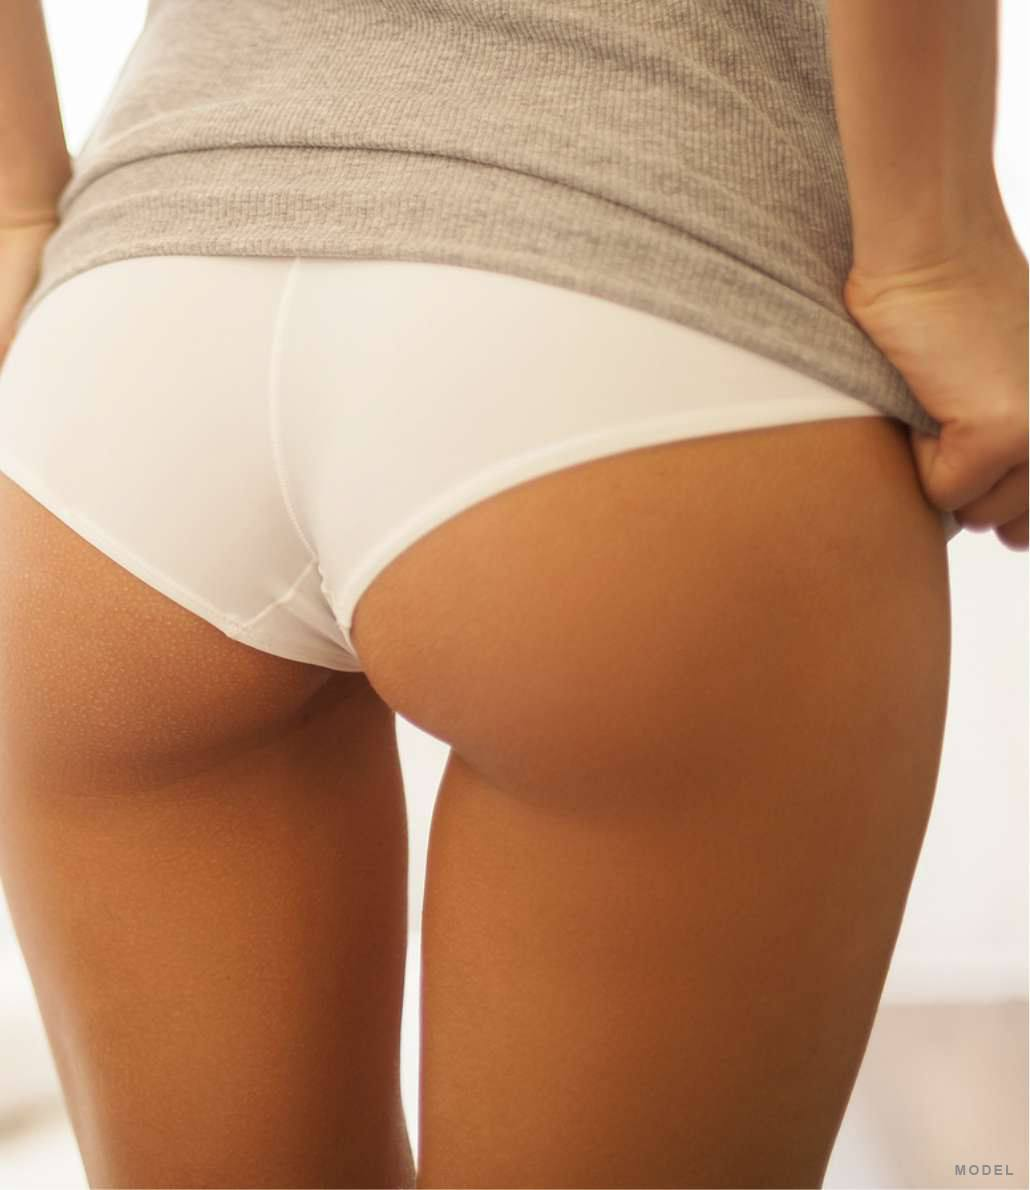 Back of woman's thighs